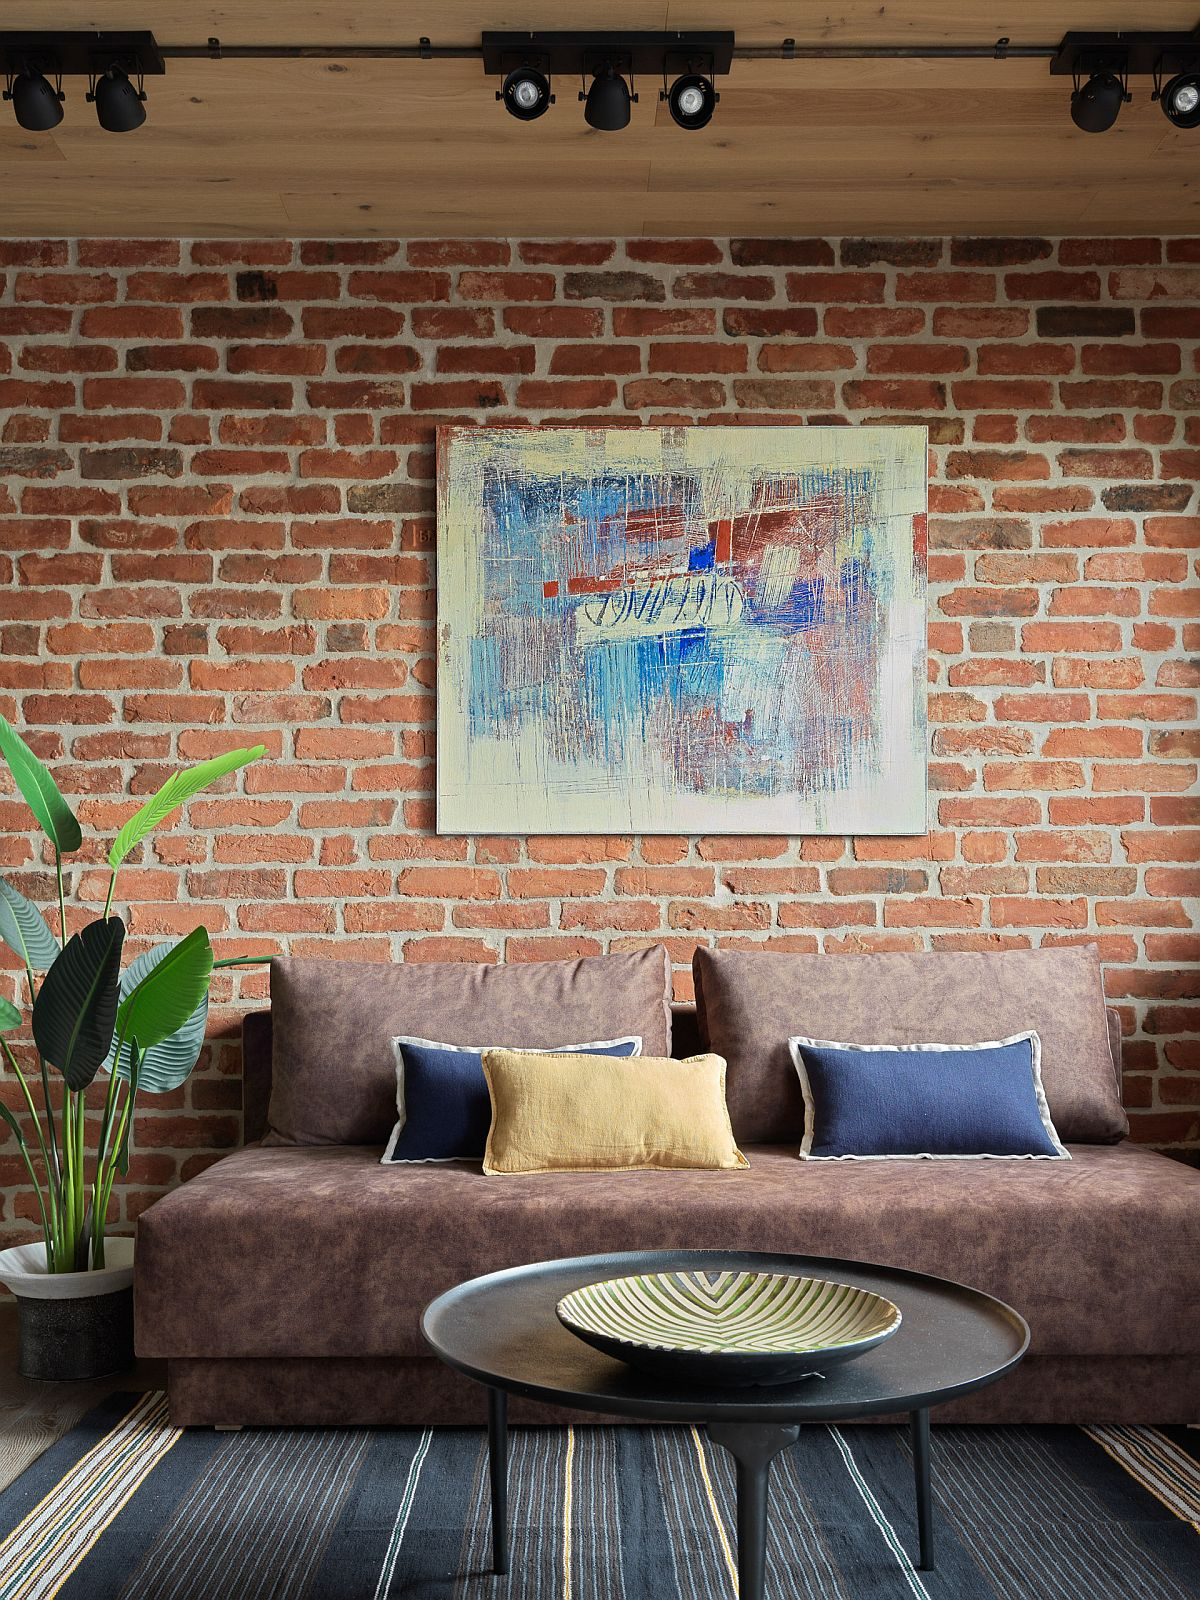 Texture-filled living room with a brick wall in the backdrop can still look stylish and modern